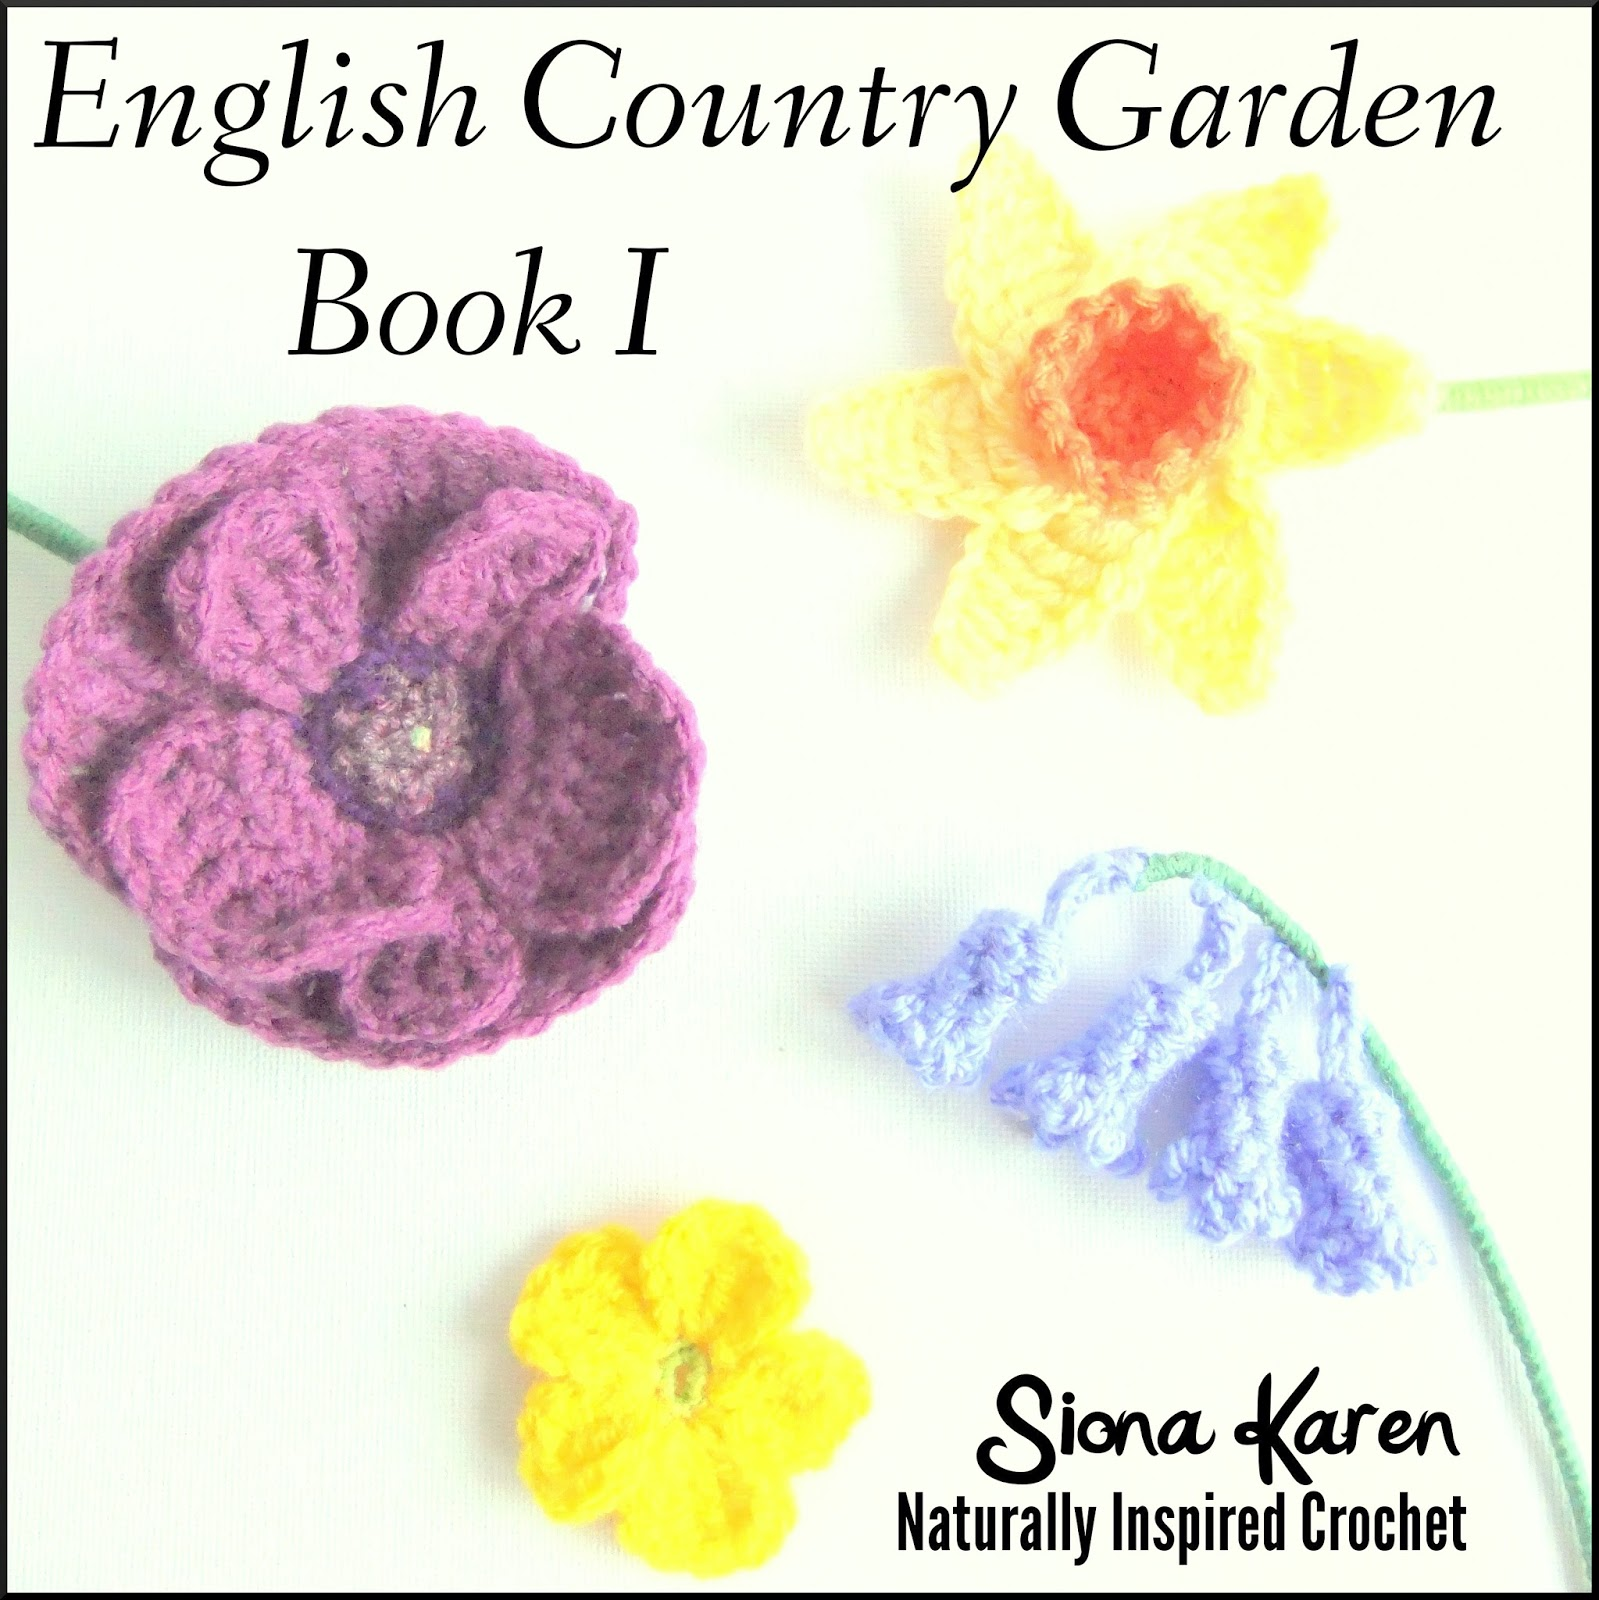 Crochet Patterns In English : Siona Karen : Crochet Patterns: English Country Garden ...